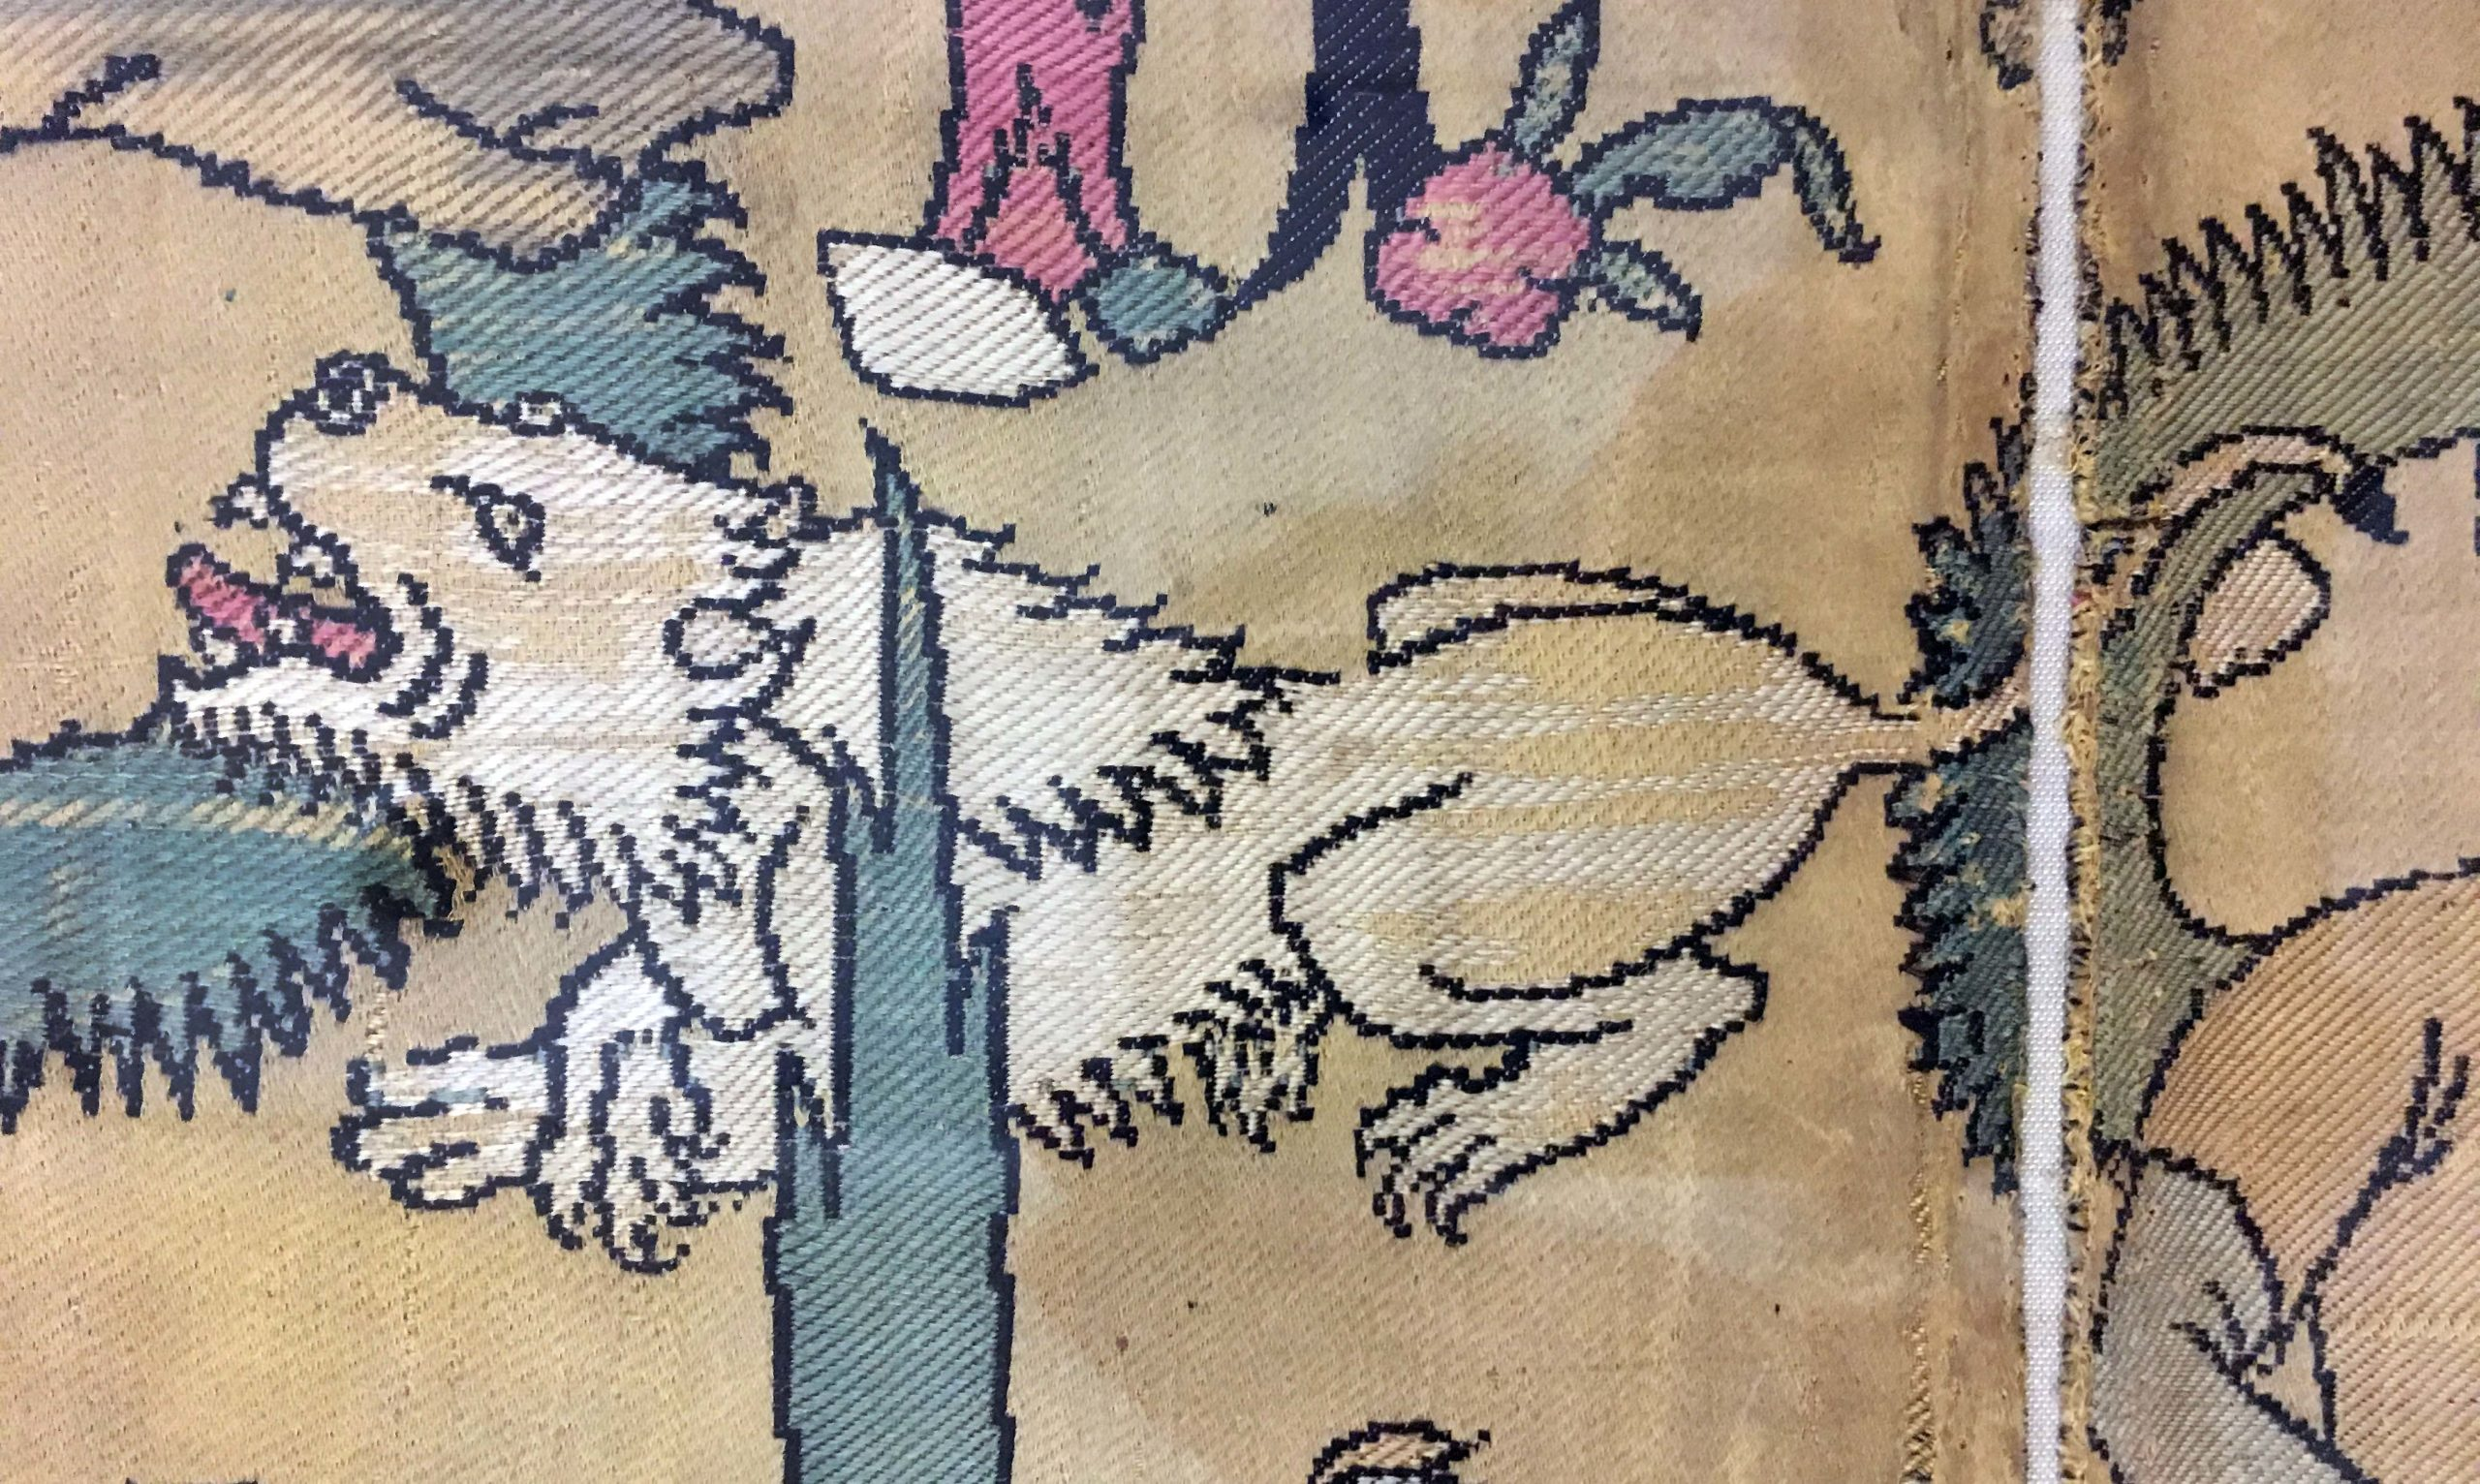 Lion (detail), Textile Fragment Depicting a Figure in a Landscape (attributed to Iran), 16th century, silk (lampas), 101.6 x 36.8 cm (The Metropolitan Museum of Art, photo: Nader Sayadi)